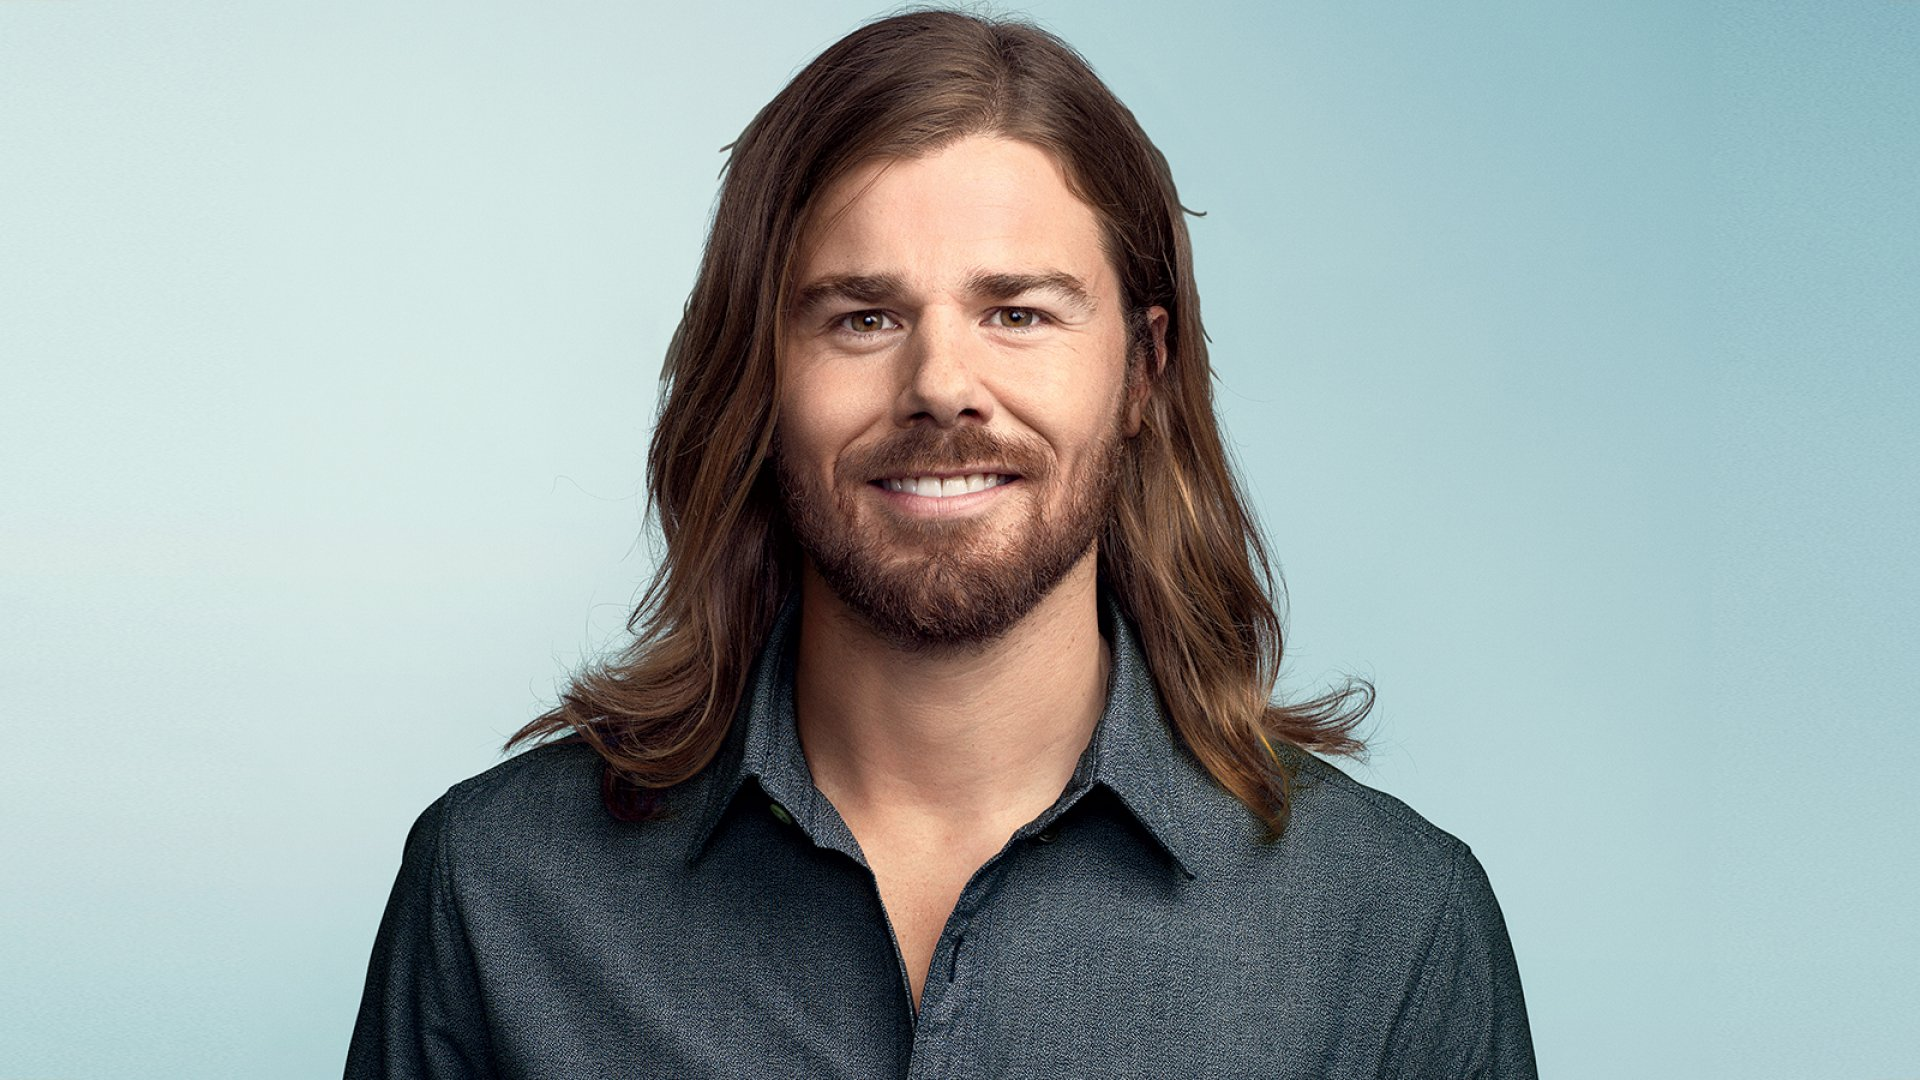 Dan Price took a walk in the woods with a friend who was struggling to live on less than $50,000, about a million dollars below what he was making. Some two weeks later, he instituted his minimum wage of $70,000 and challenged other entrepreneurs to follow him.